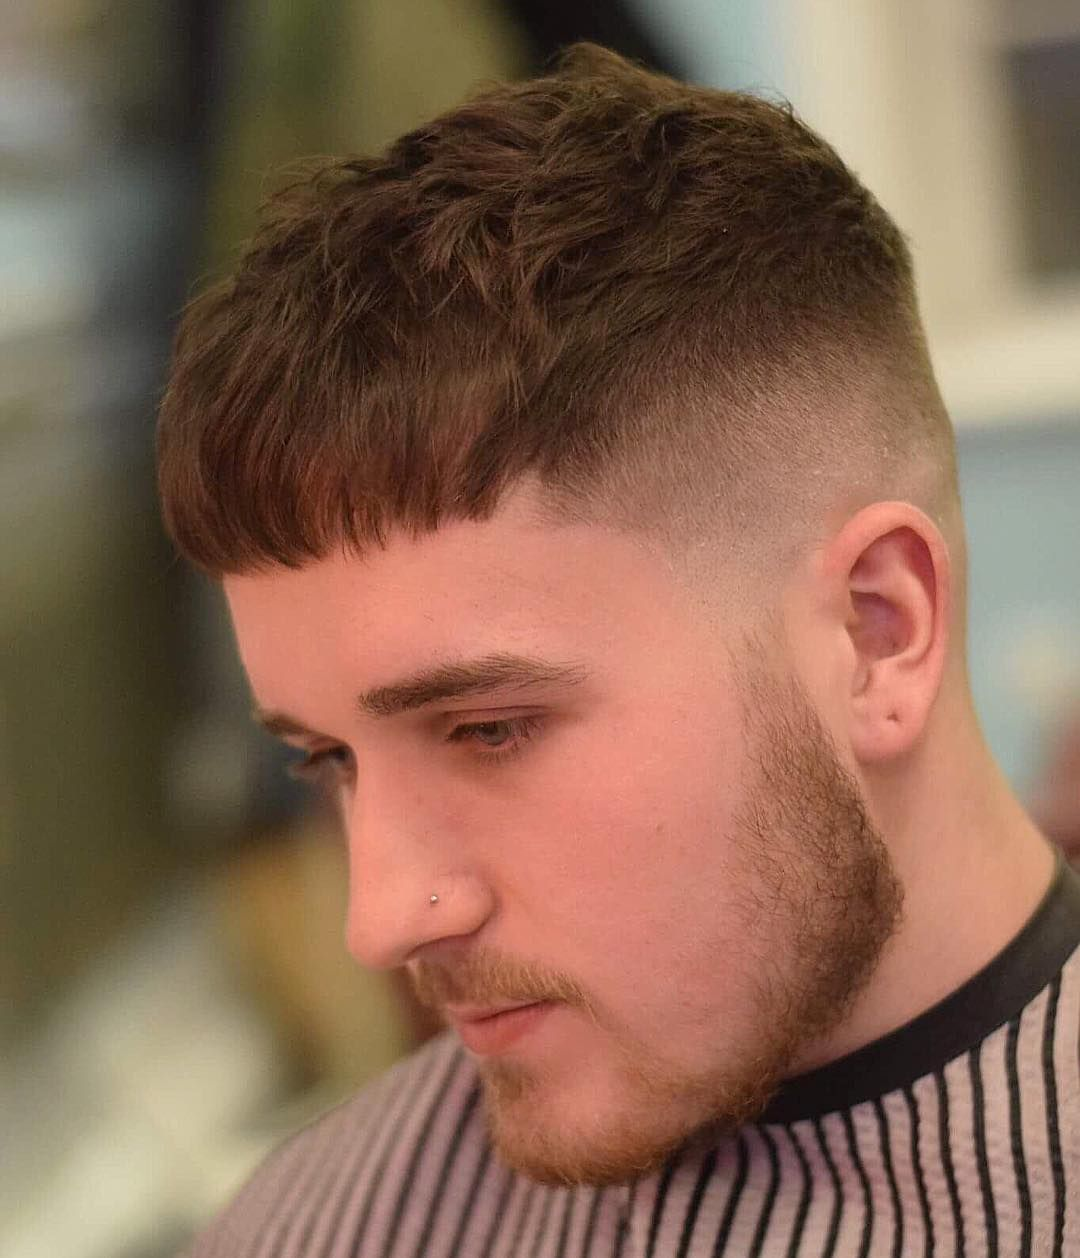 European Men Haircuts For Short Hair Mens Hairstyles Short European Hair Men Haircut Styles